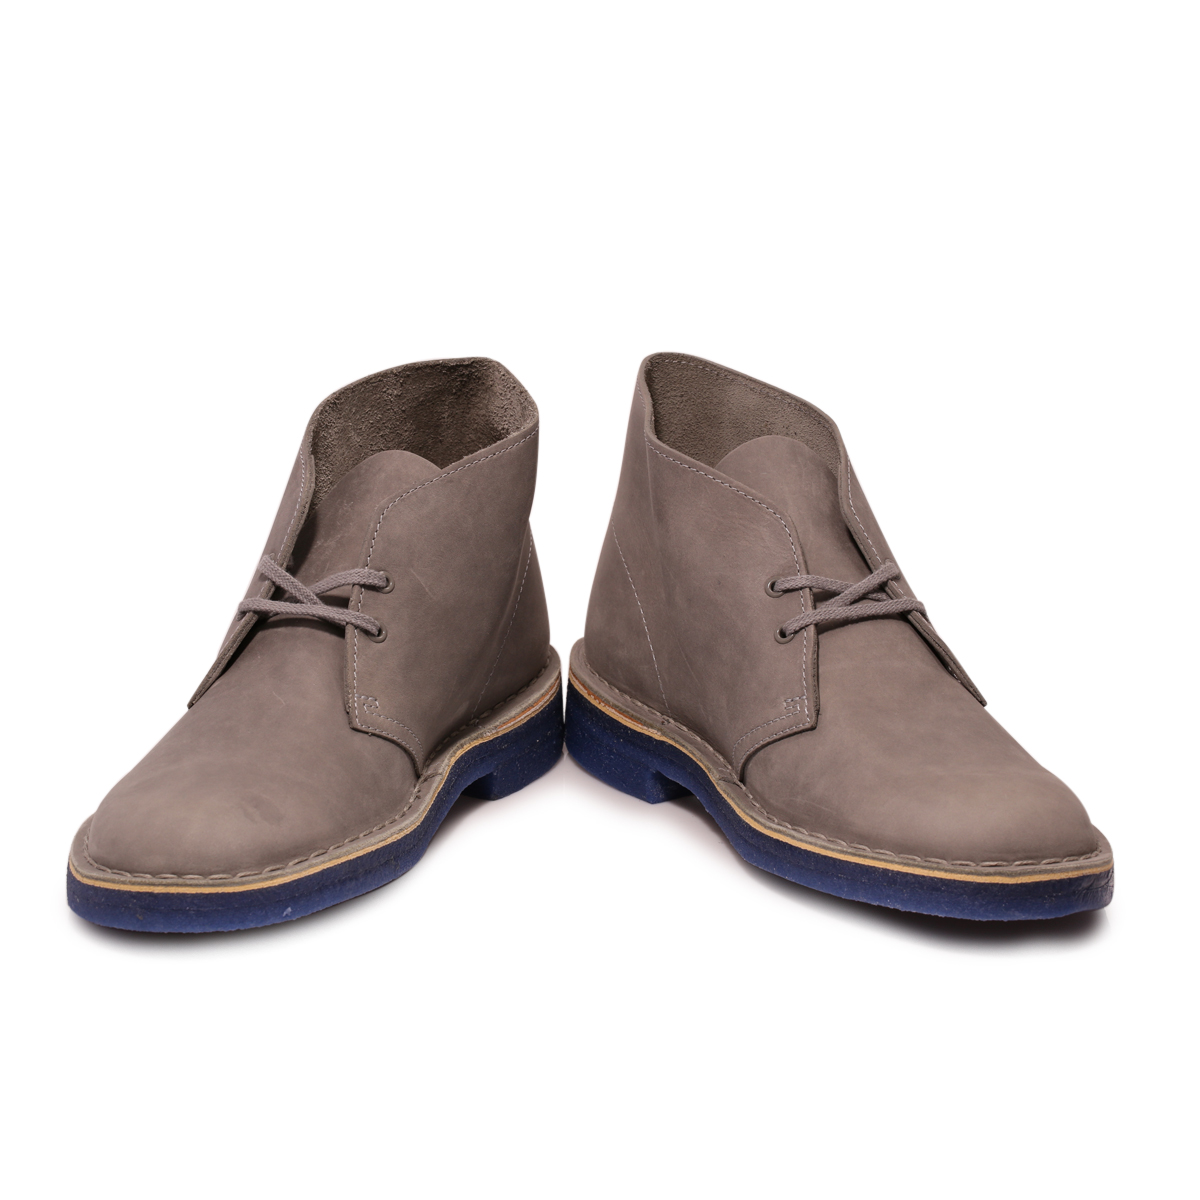 clarks mens grey blue suede desert boots shoes size 7 11